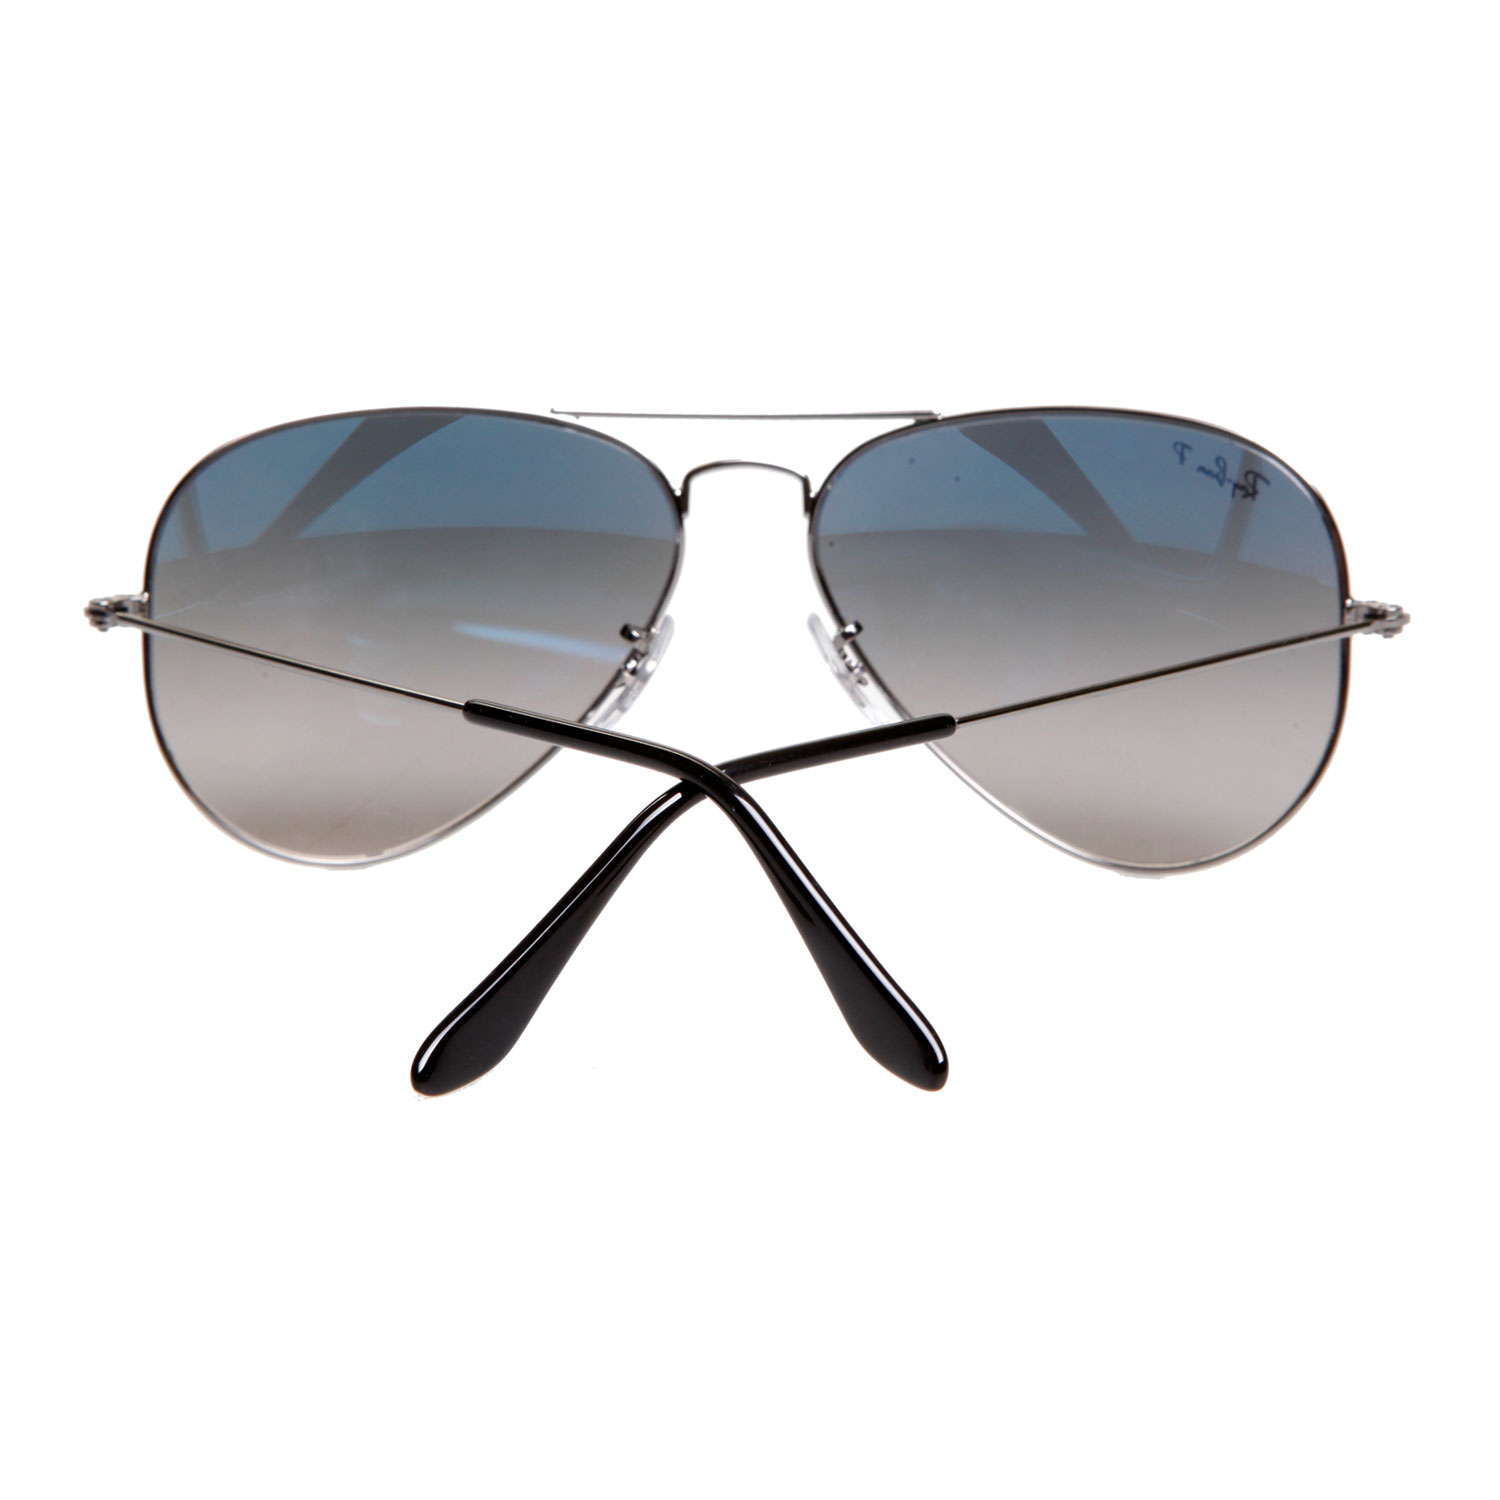 a4df3ddce1 ray ban aviator sunglasses rb3025 black  mirror 58mm ray ban ...